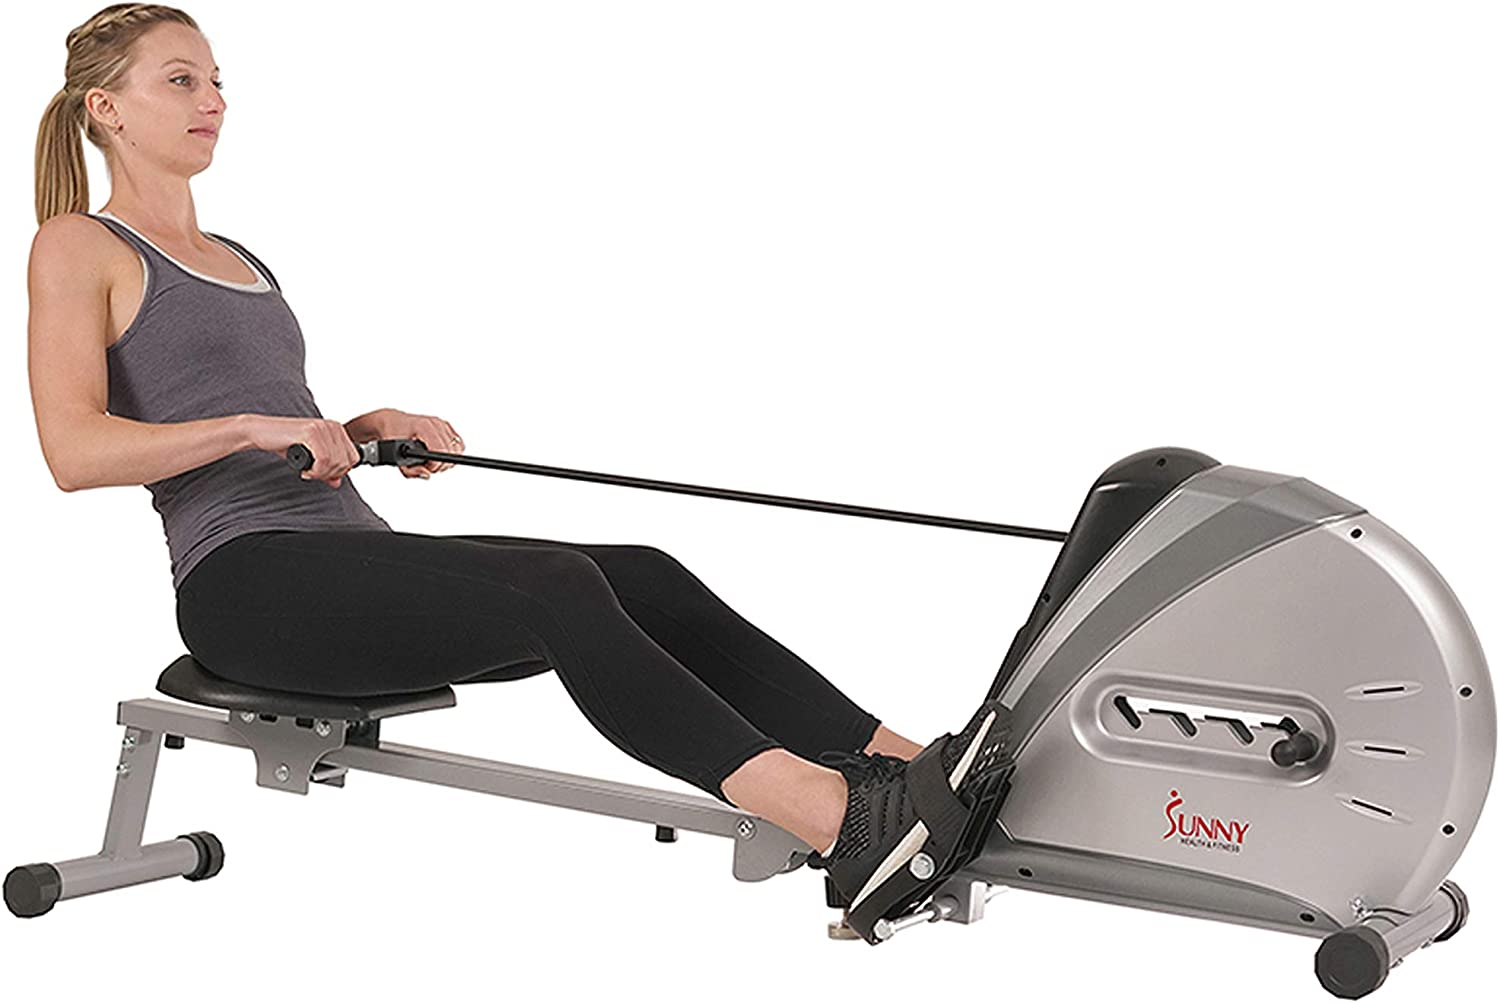 Sunny SF-RW5606 Review – Elastic Cord Rowing Machine Rower with LCD Monitor